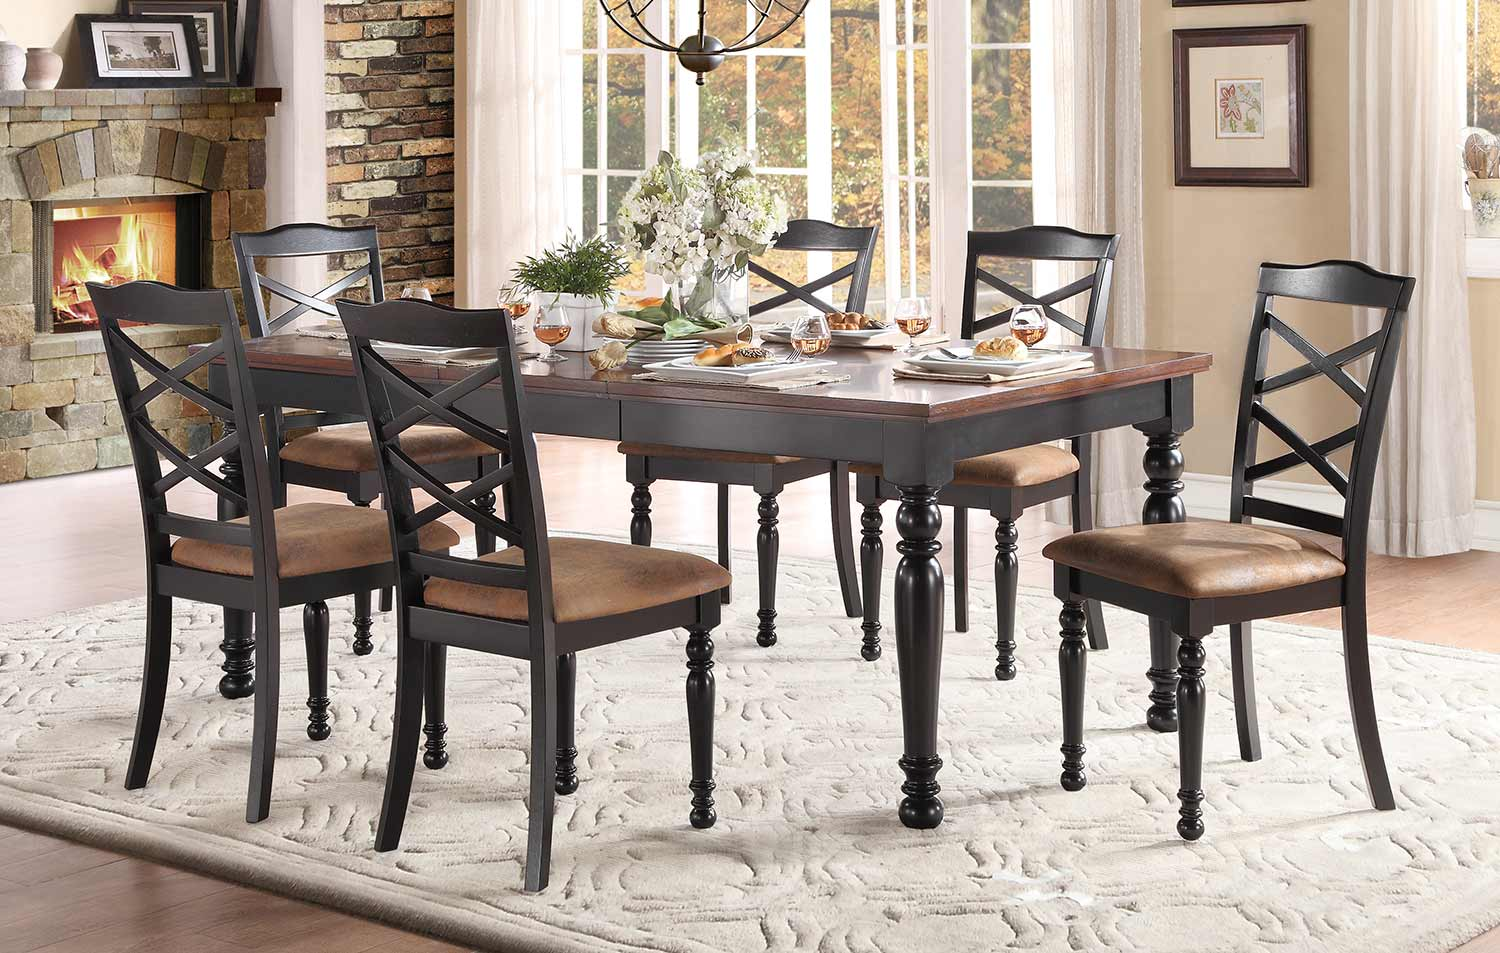 Homelegance Isleton Dining Set - Black